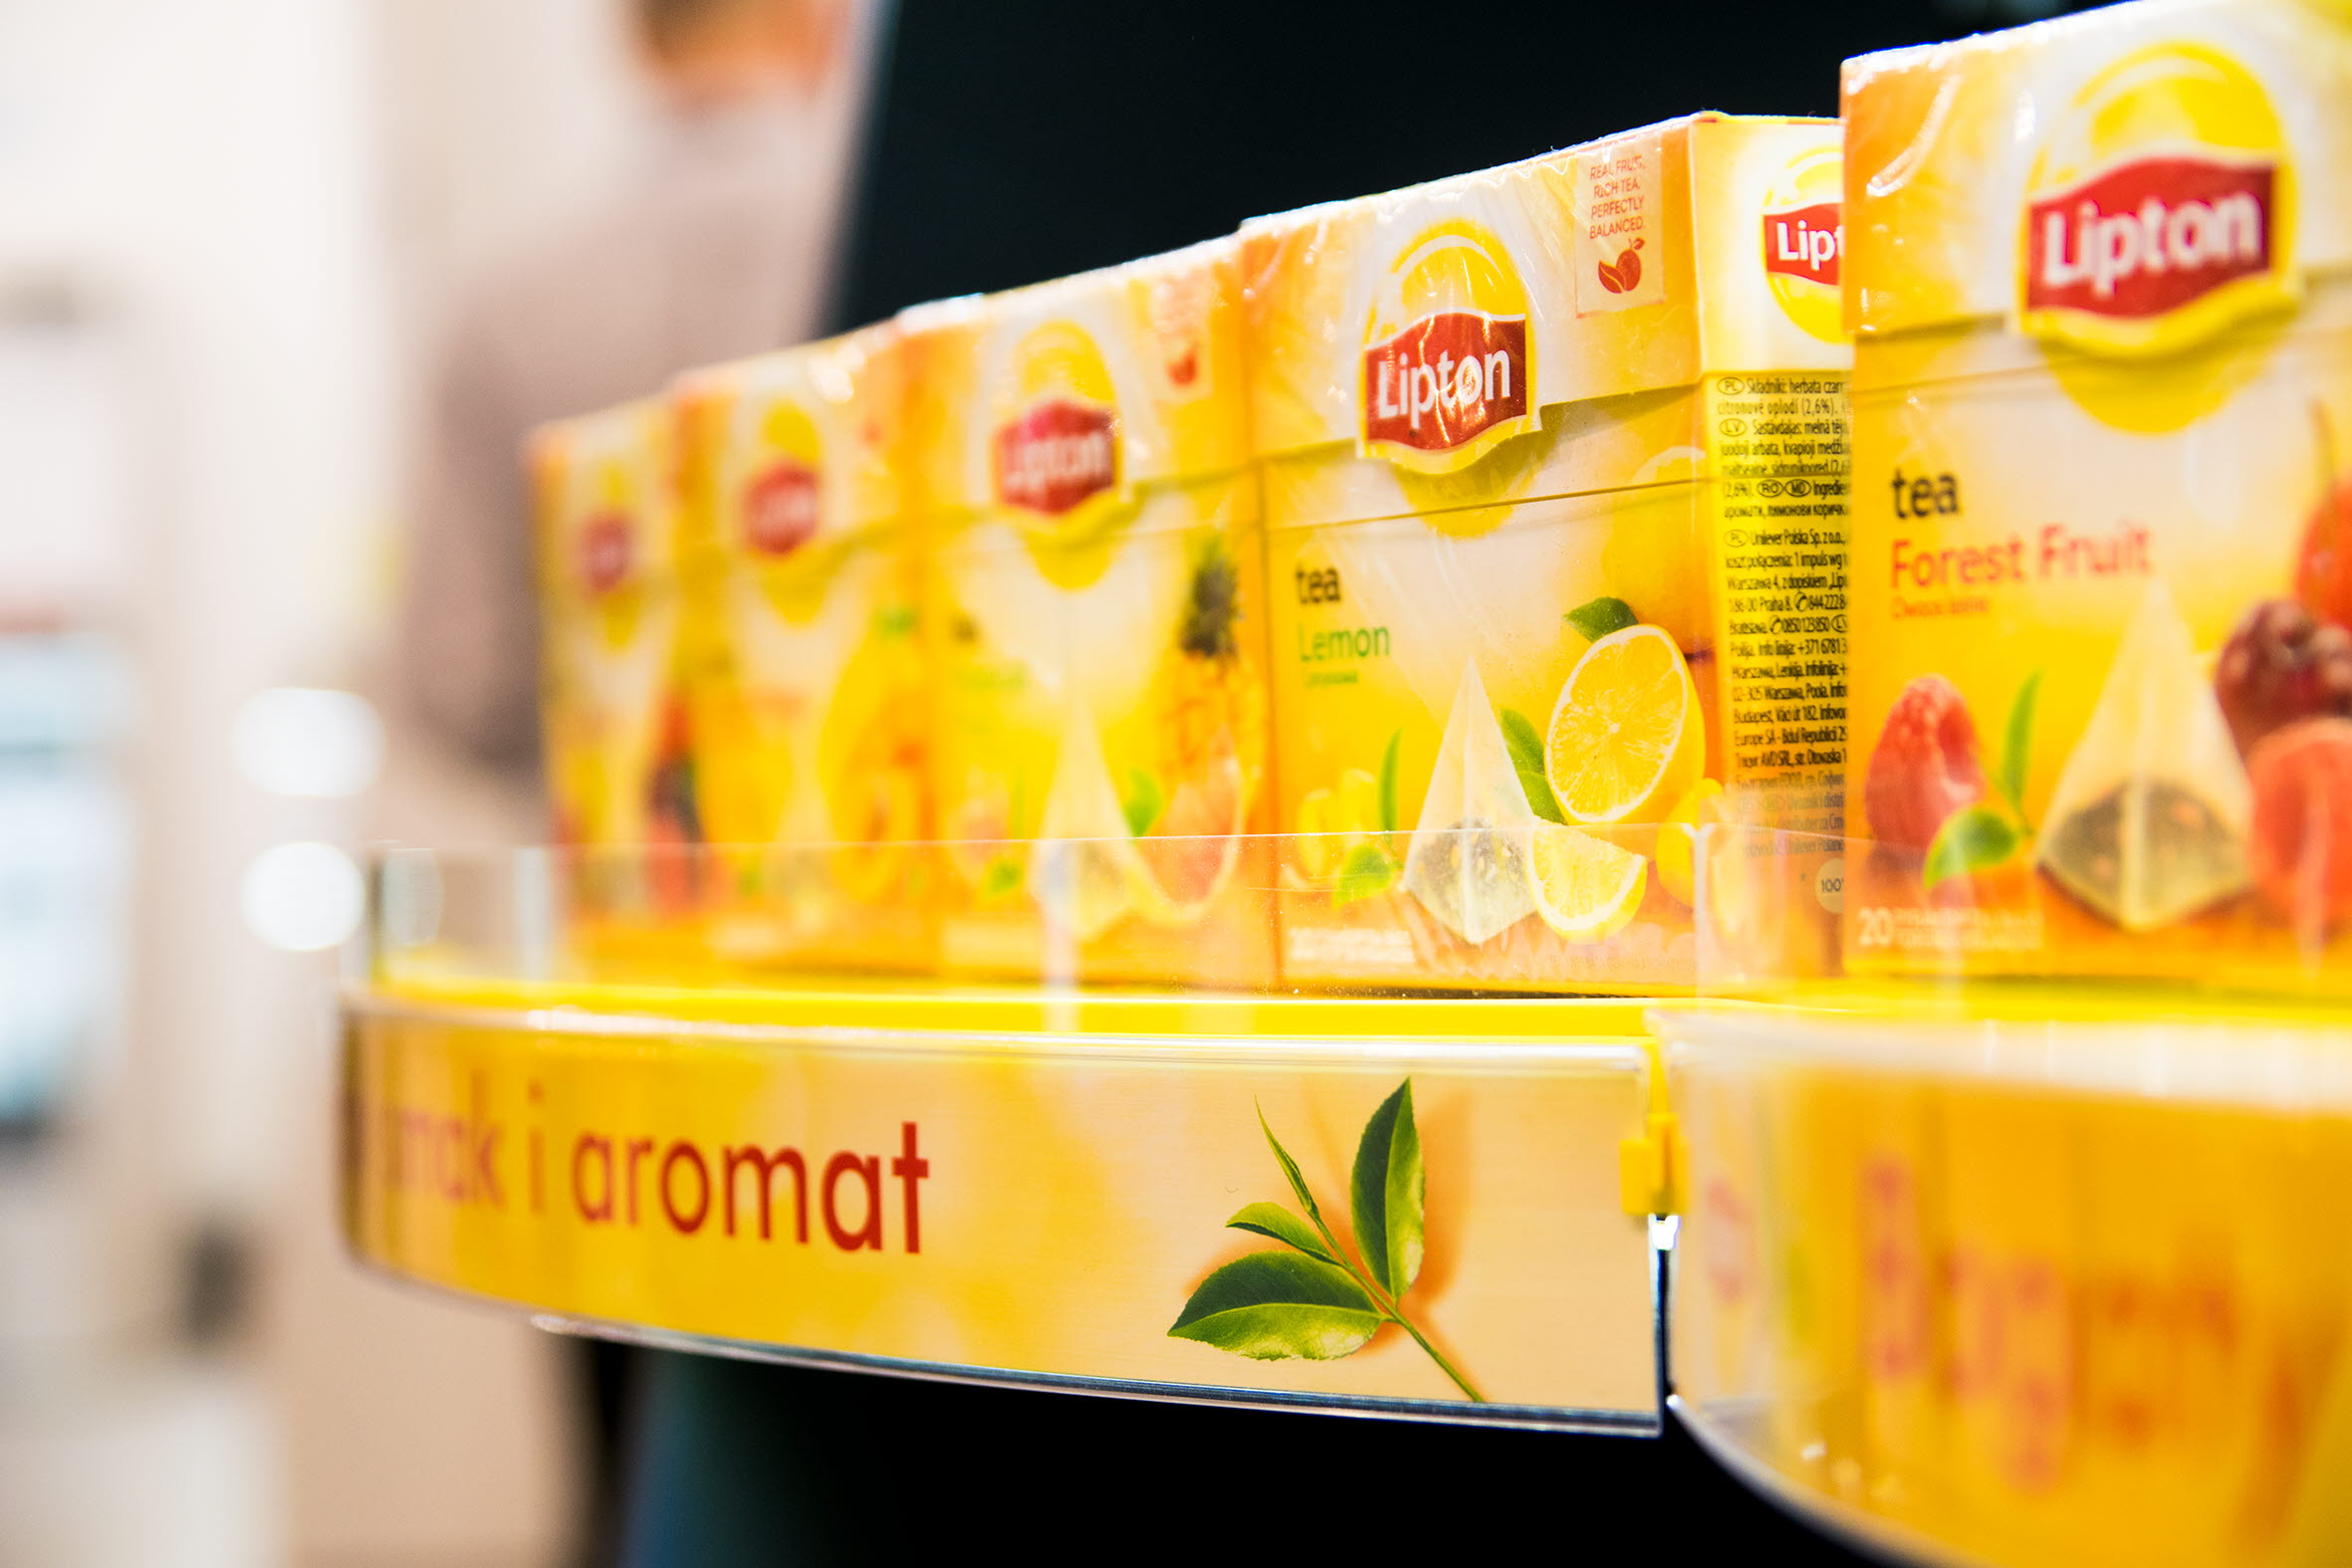 Lipton_Unilever_Hero-Shelf_HL-Display_39229_1015.jpg